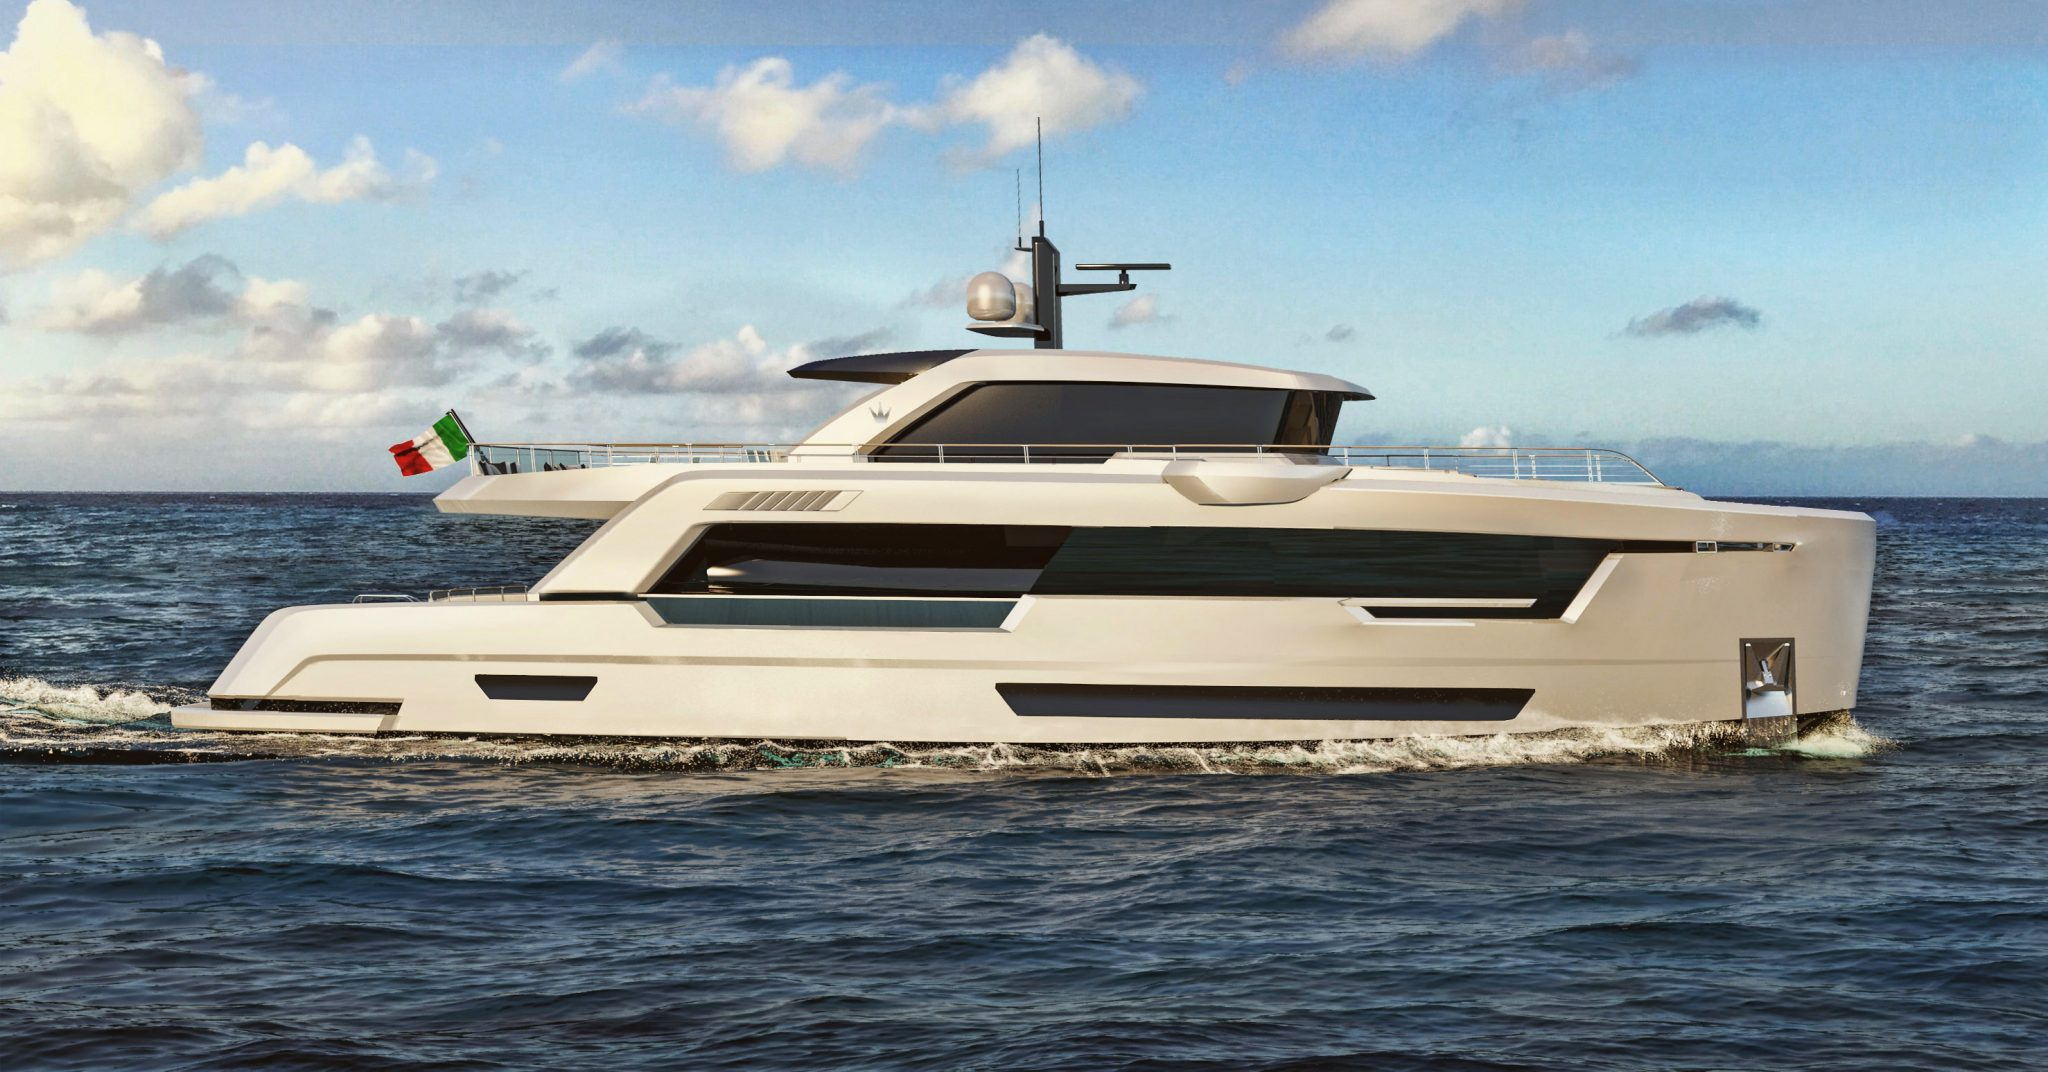 Stylish Explorer Yacht Ducale 88 Render